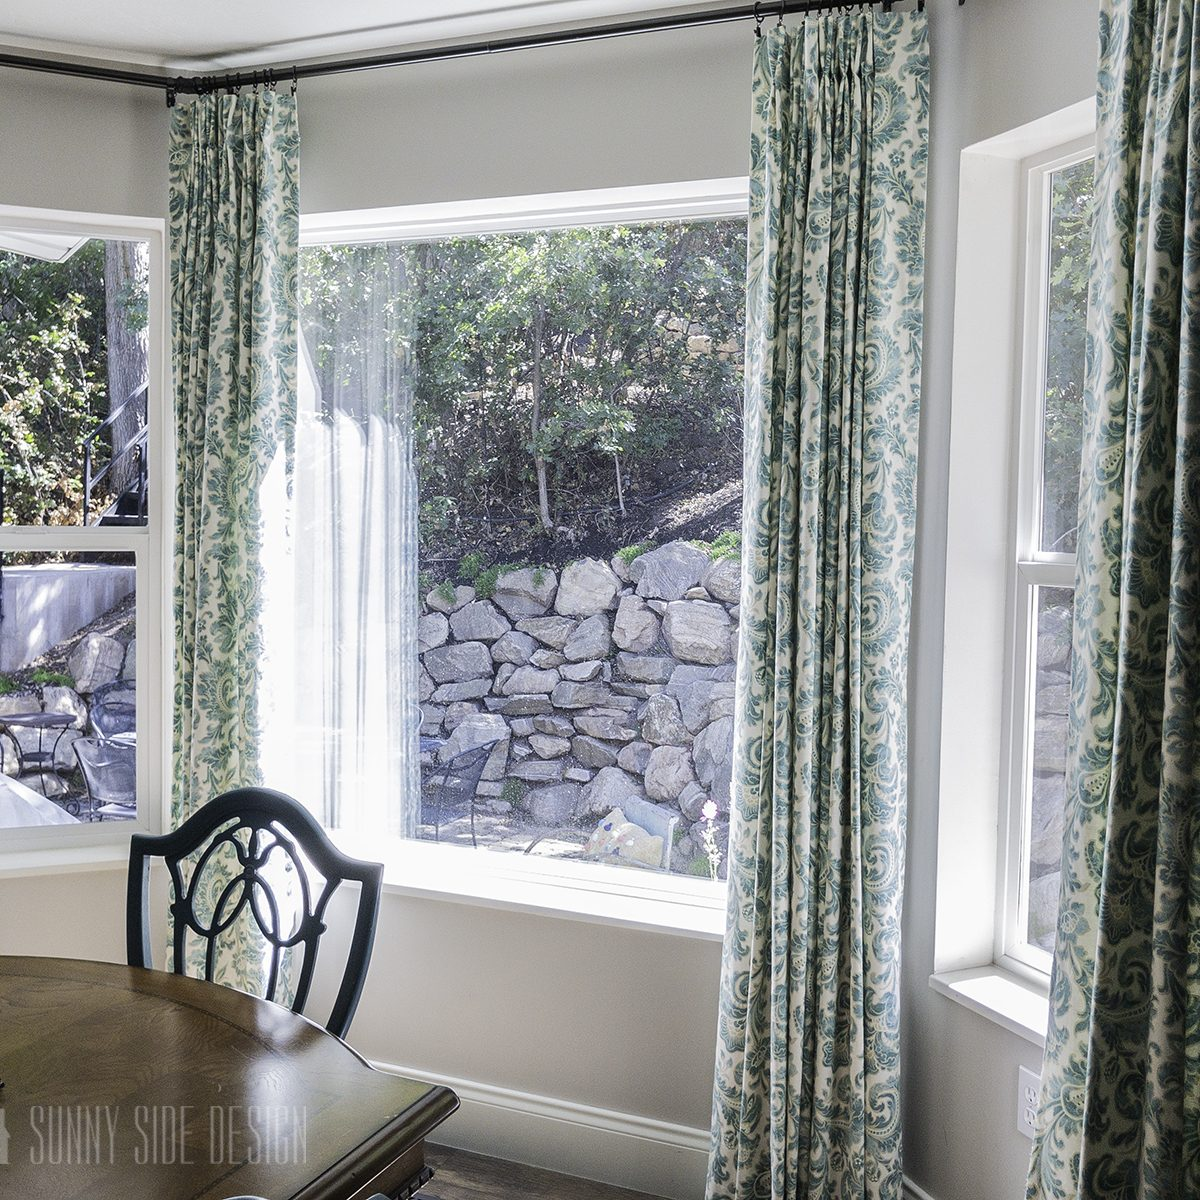 How To DIY Your Own Bay Window Curtain Rod   Sunny Side Design